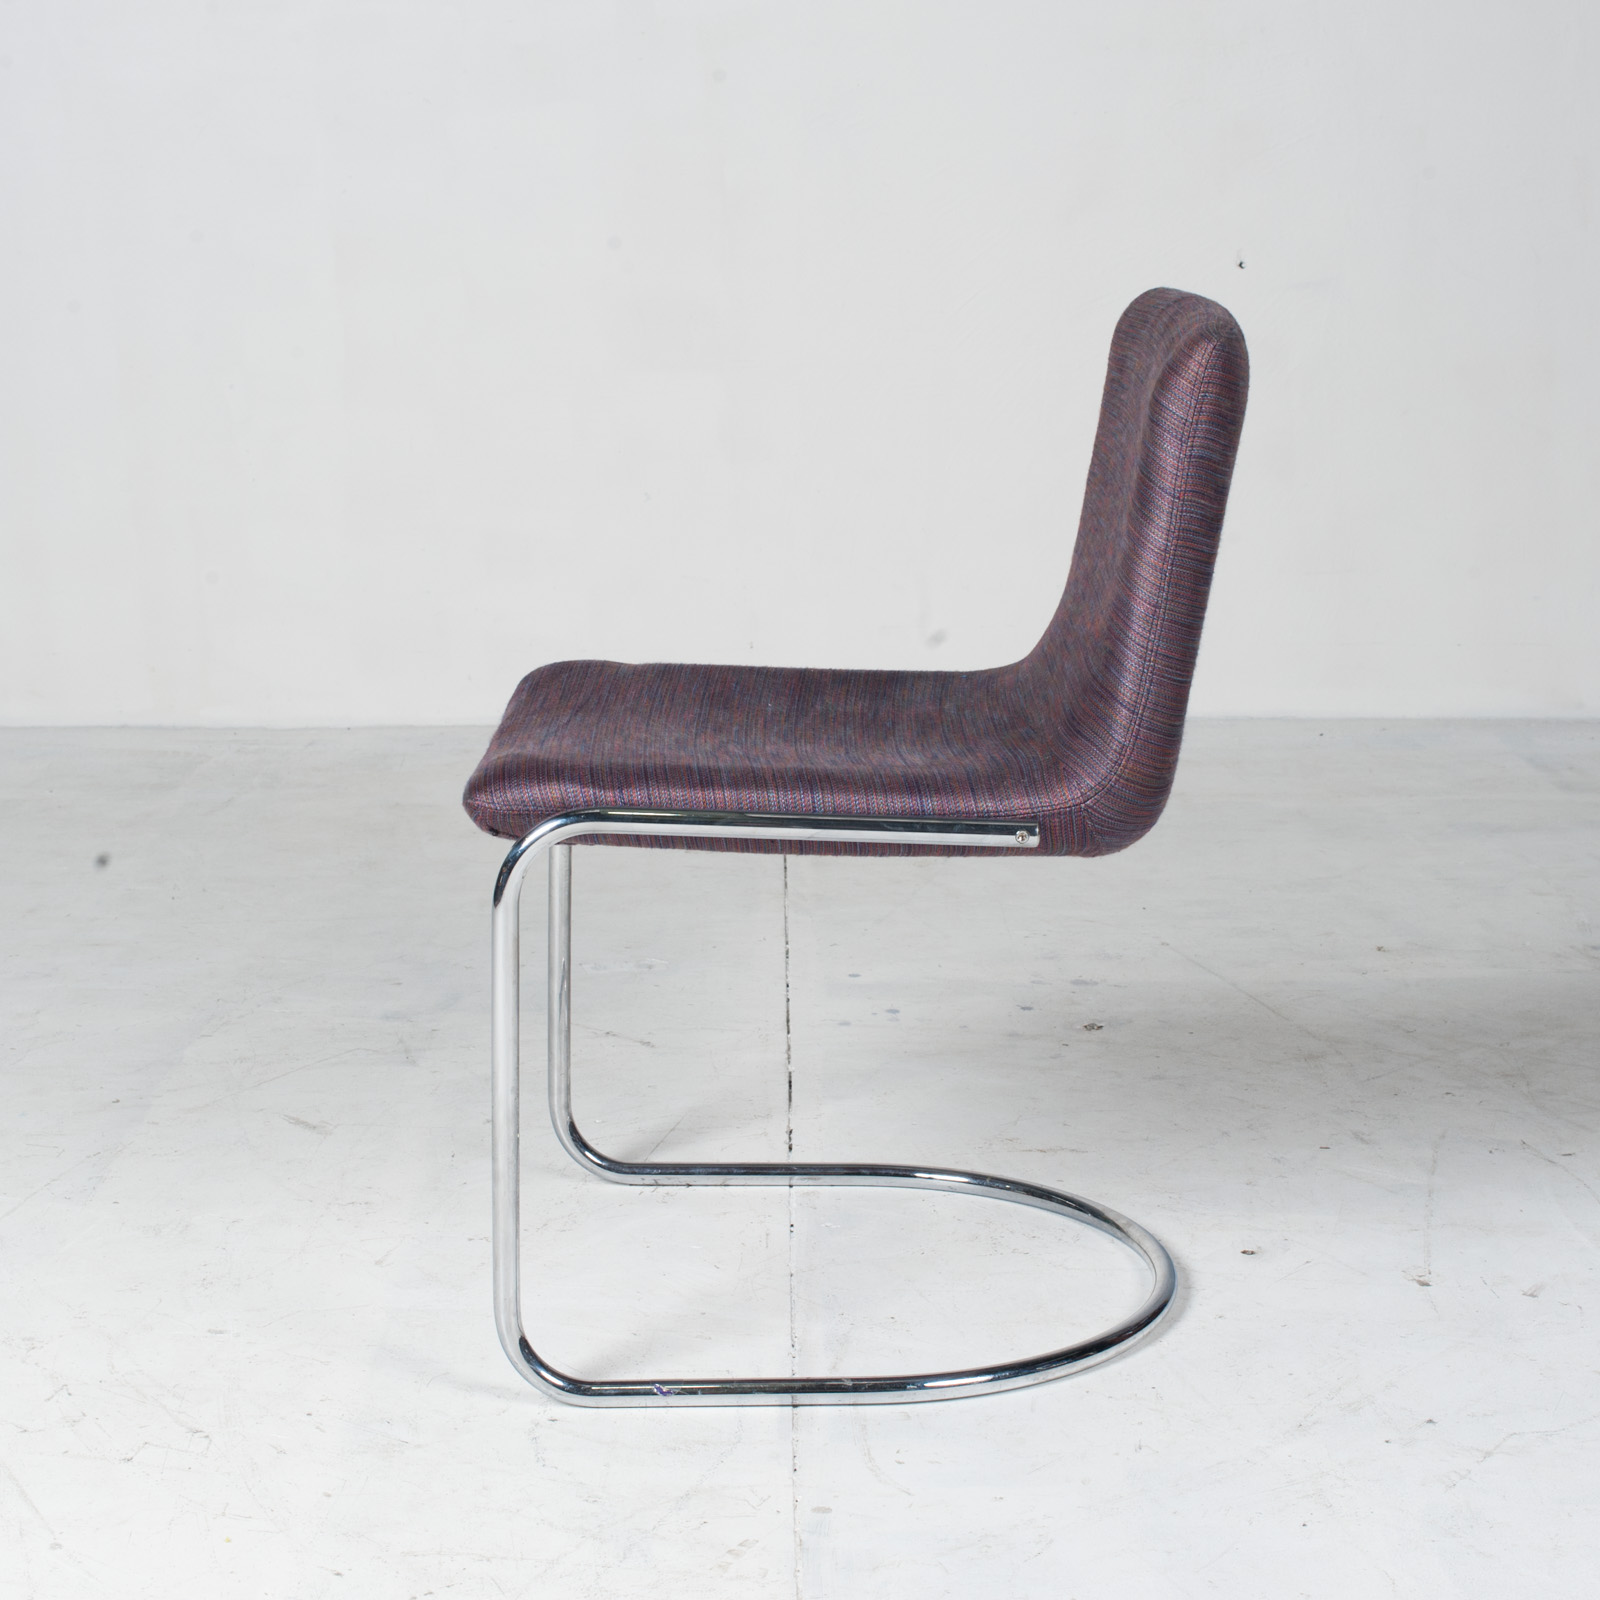 Set Of 6 Model 'lens' Dining Chairs By Giovanni Offredi For Saporiti In Chrome And Original Upholstery 1960s Italy 10